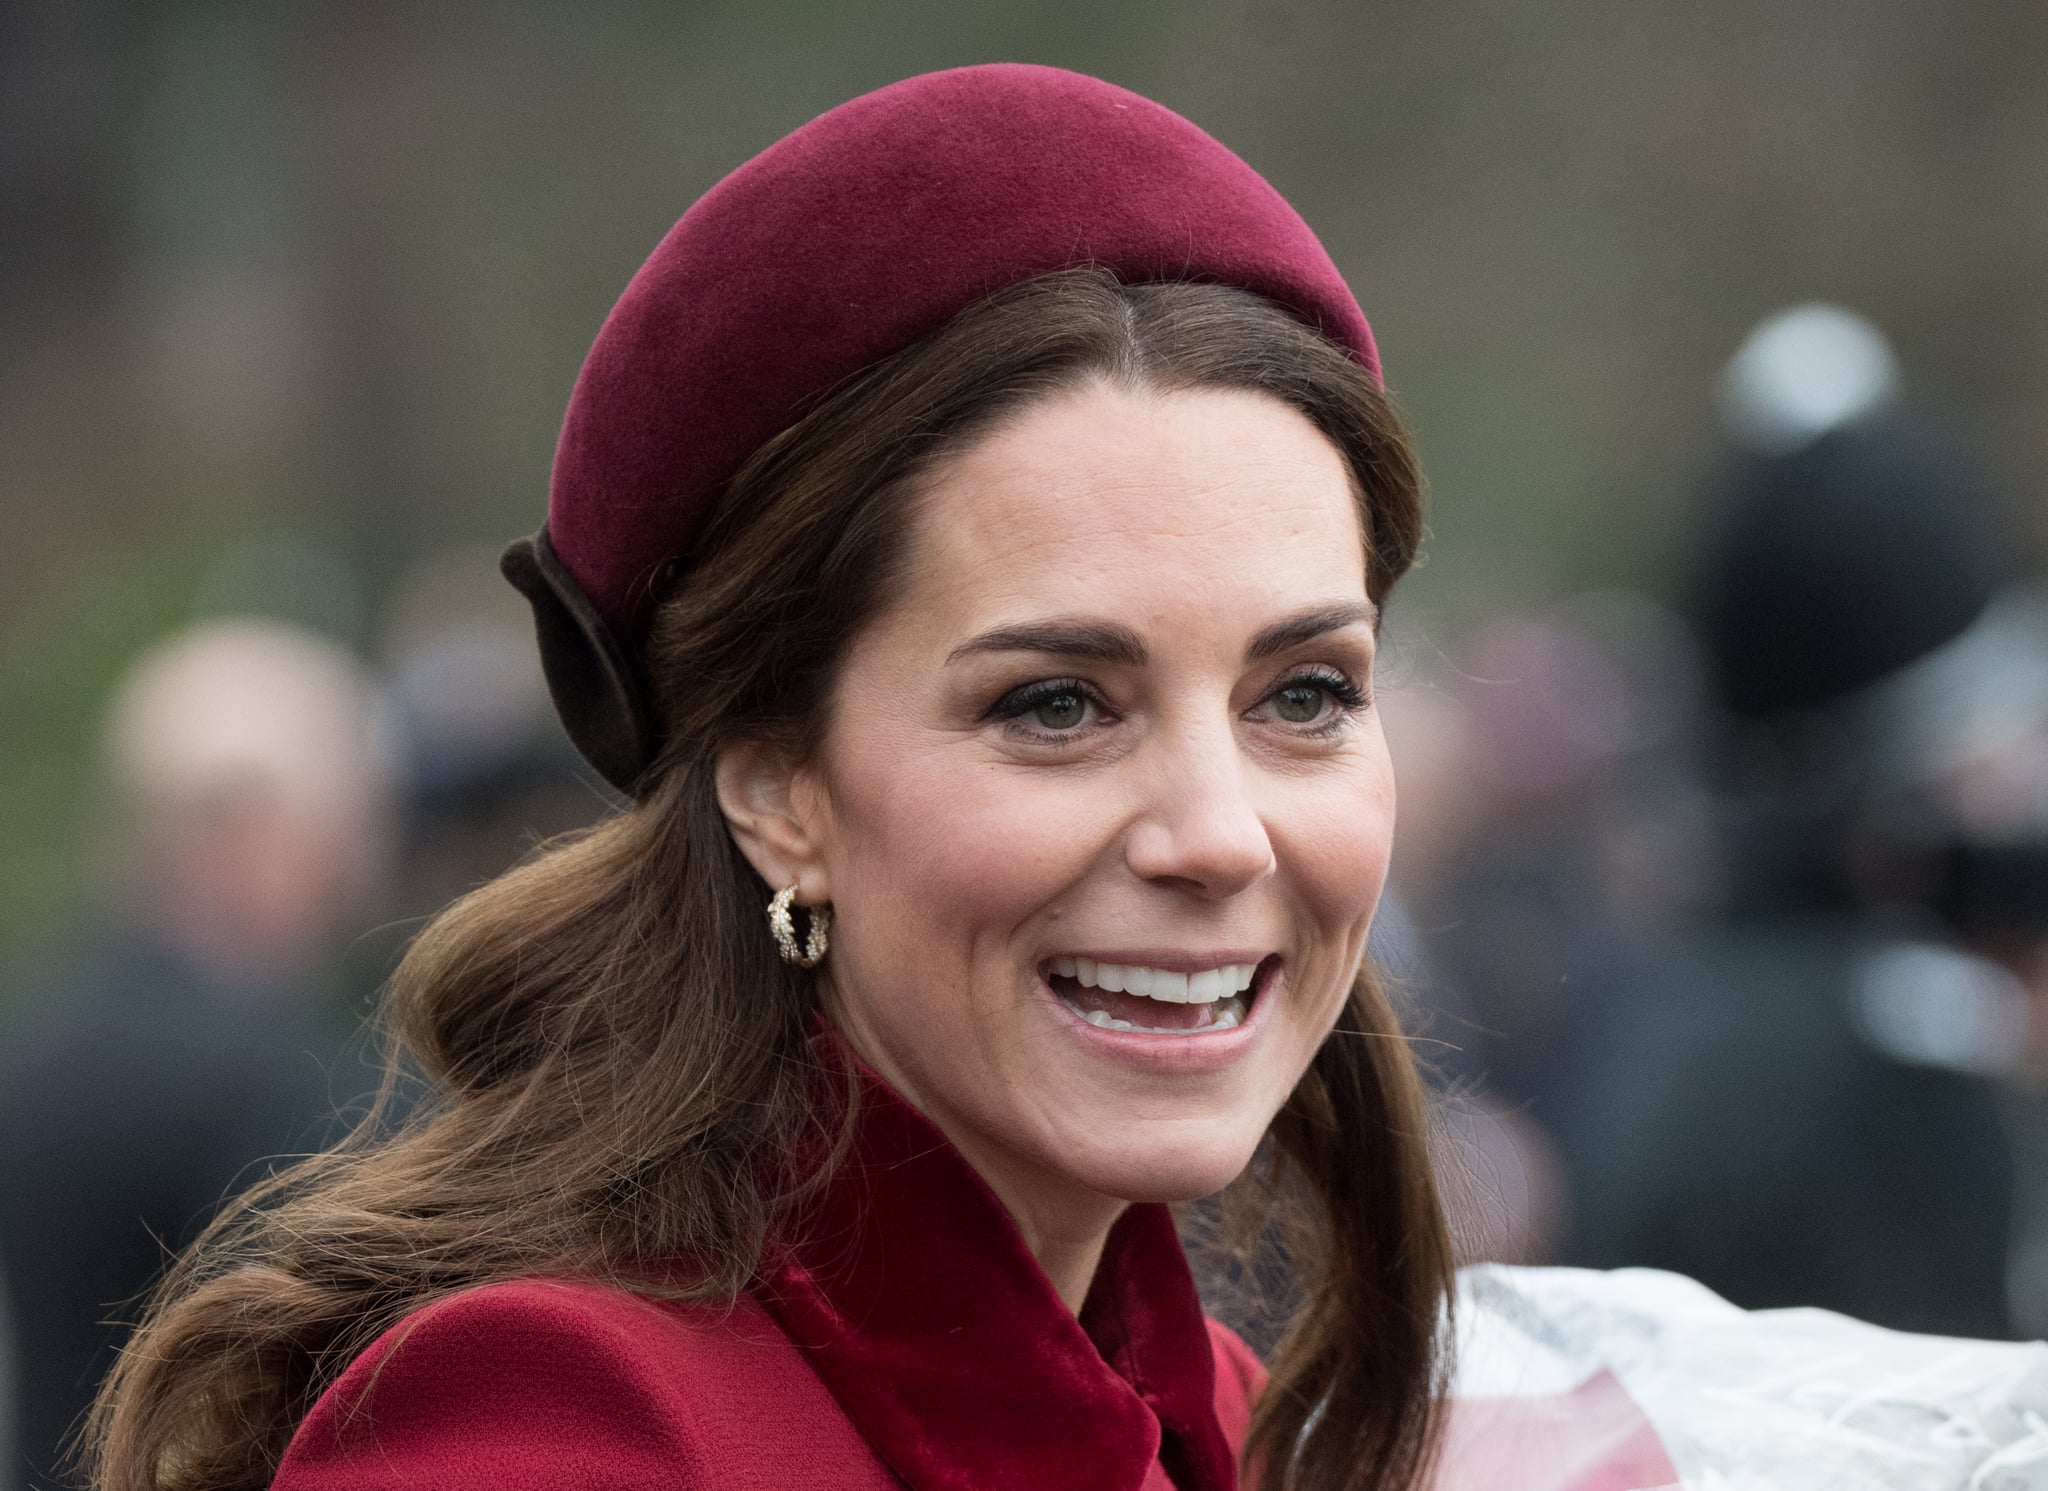 KING'S LYNN, ENGLAND - DECEMBER 25: Catherine, Duchess of Cambridge attends Christmas Day Church service at Church of St Mary Magdalene on the Sandringham estate on December 25, 2018 in King's Lynn, England. (Photo by Samir Hussein/WireImage)